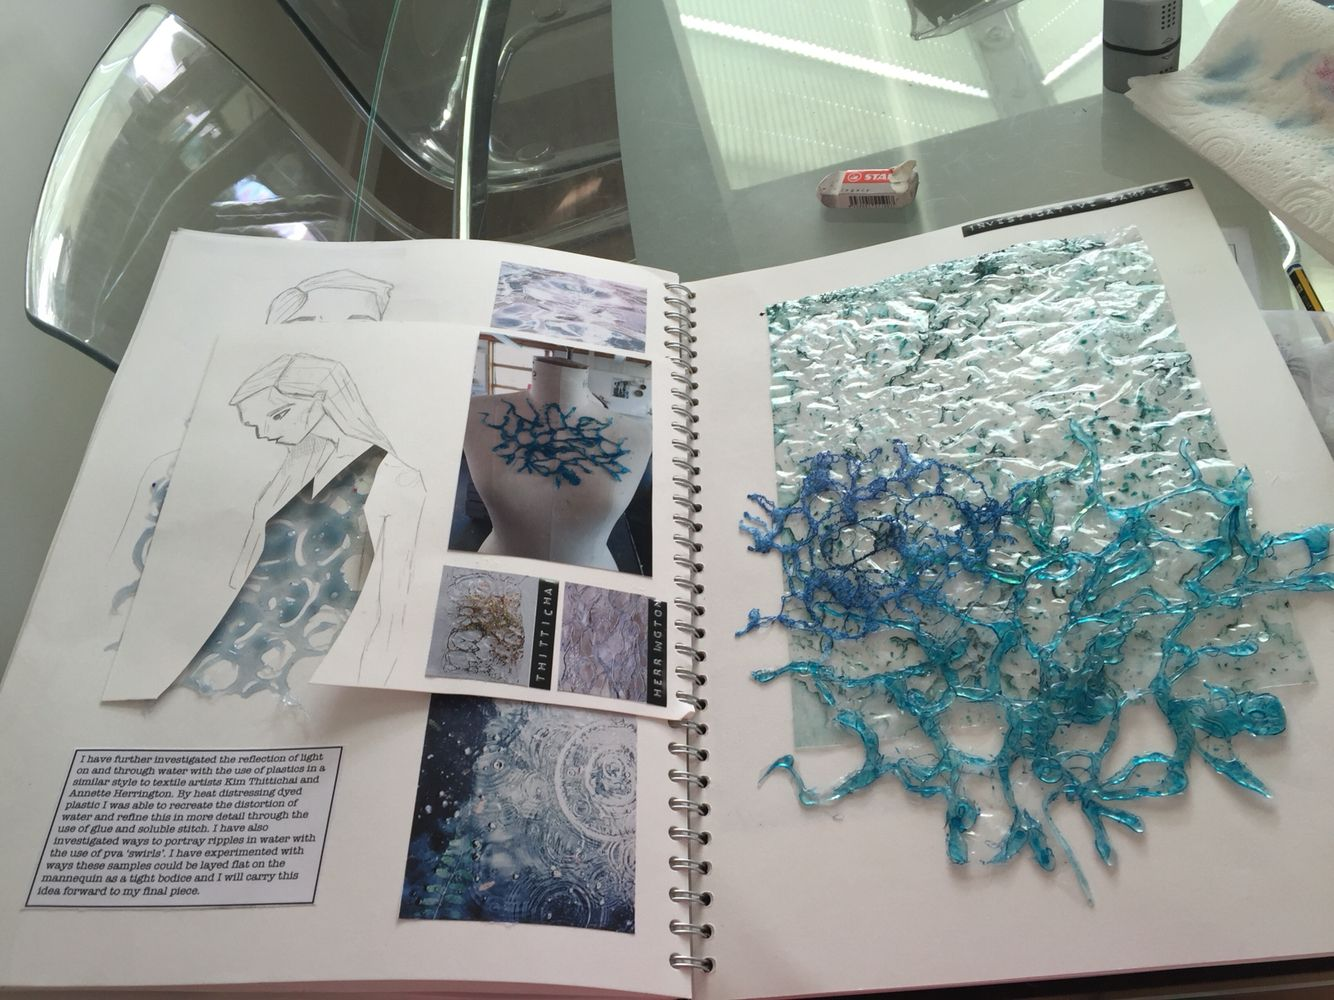 Sketchbook Page Investigative Water Sample Final Pages